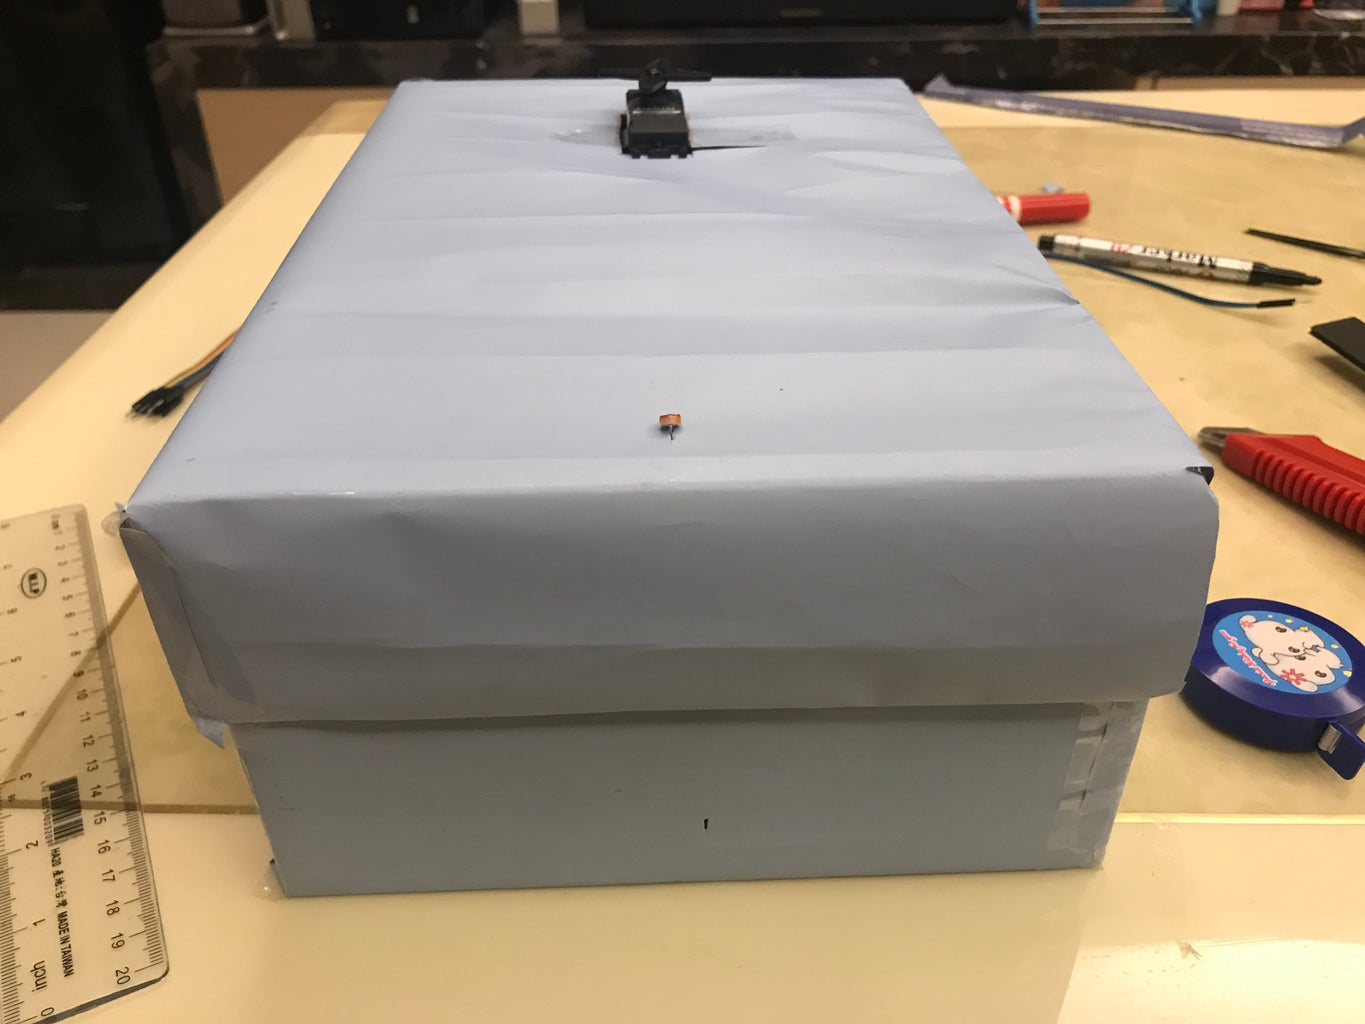 Make a Nick, in the Position Indicated on the Drawing, on the Smallest Side of the Box (the Side Below the Photoresistor As Shown in the Photo)